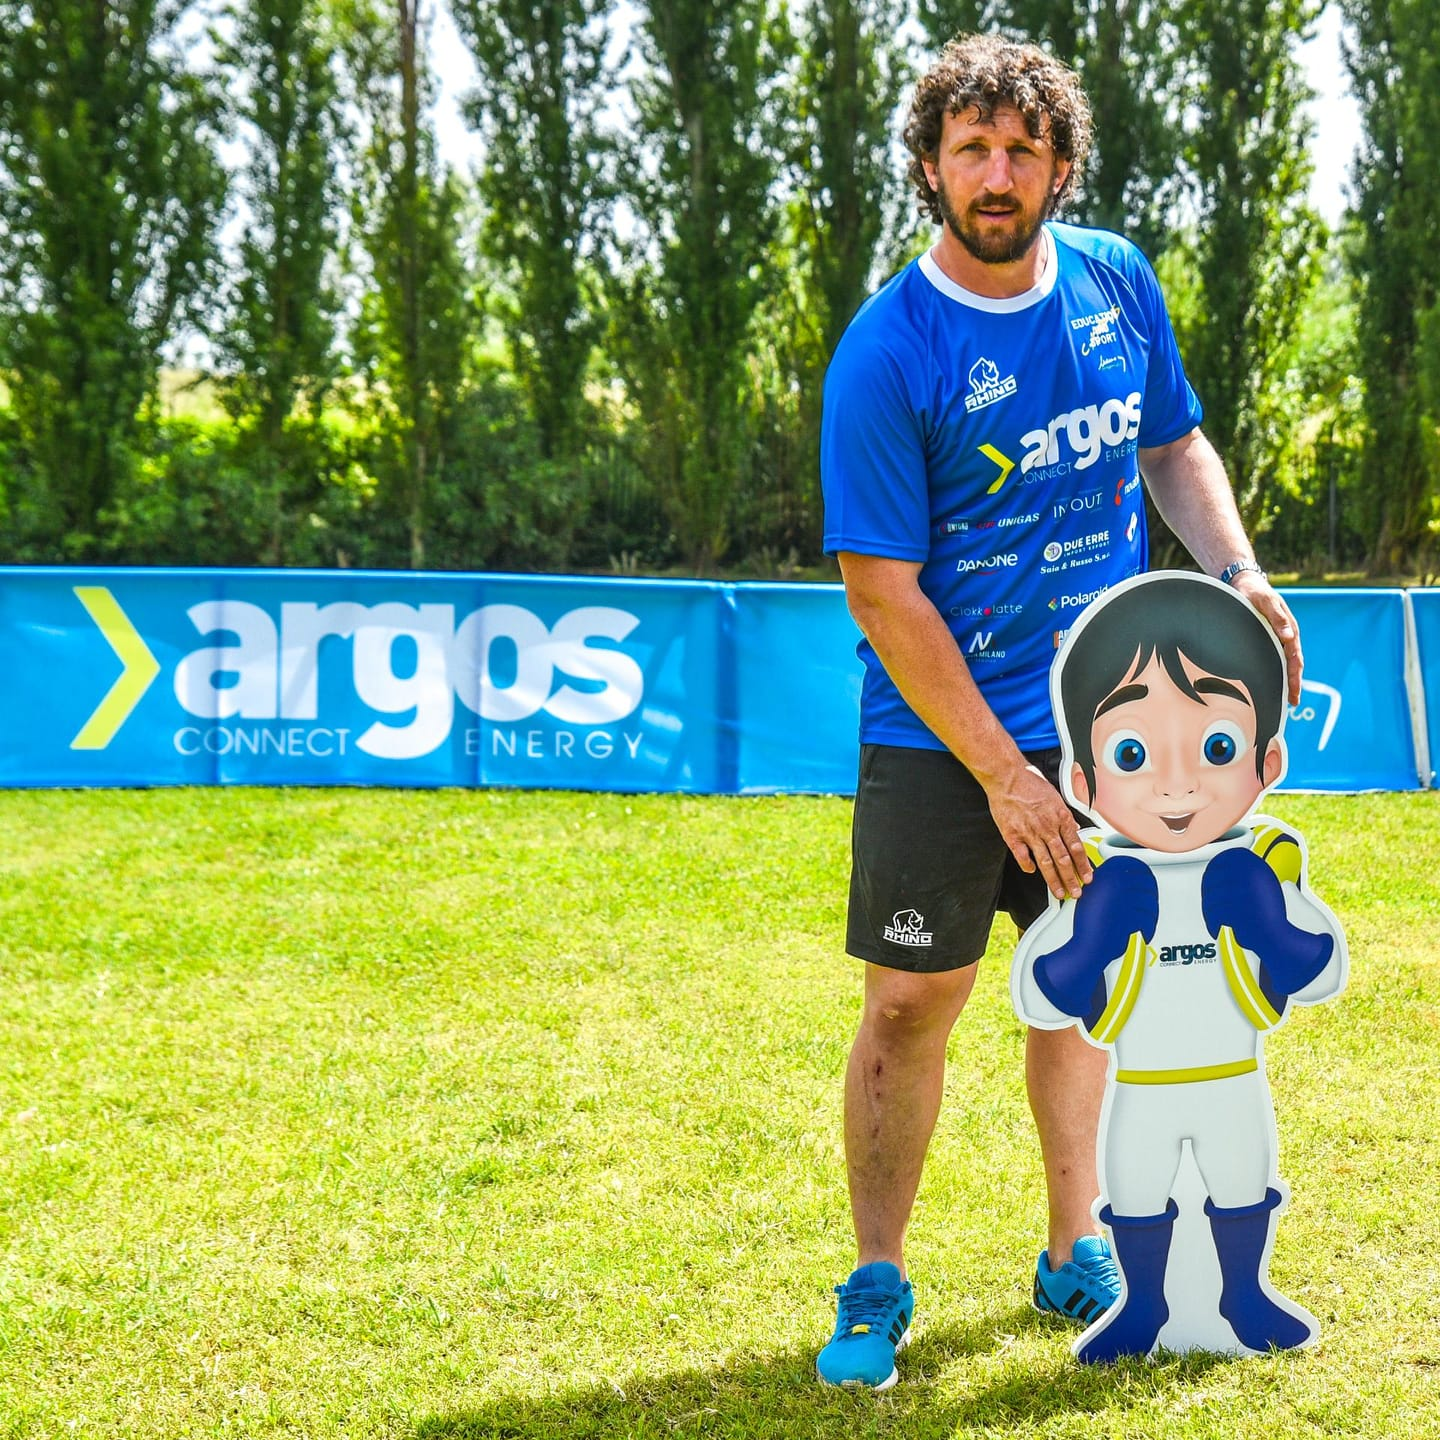 Campus Rugby Mauro Bergamasco 3